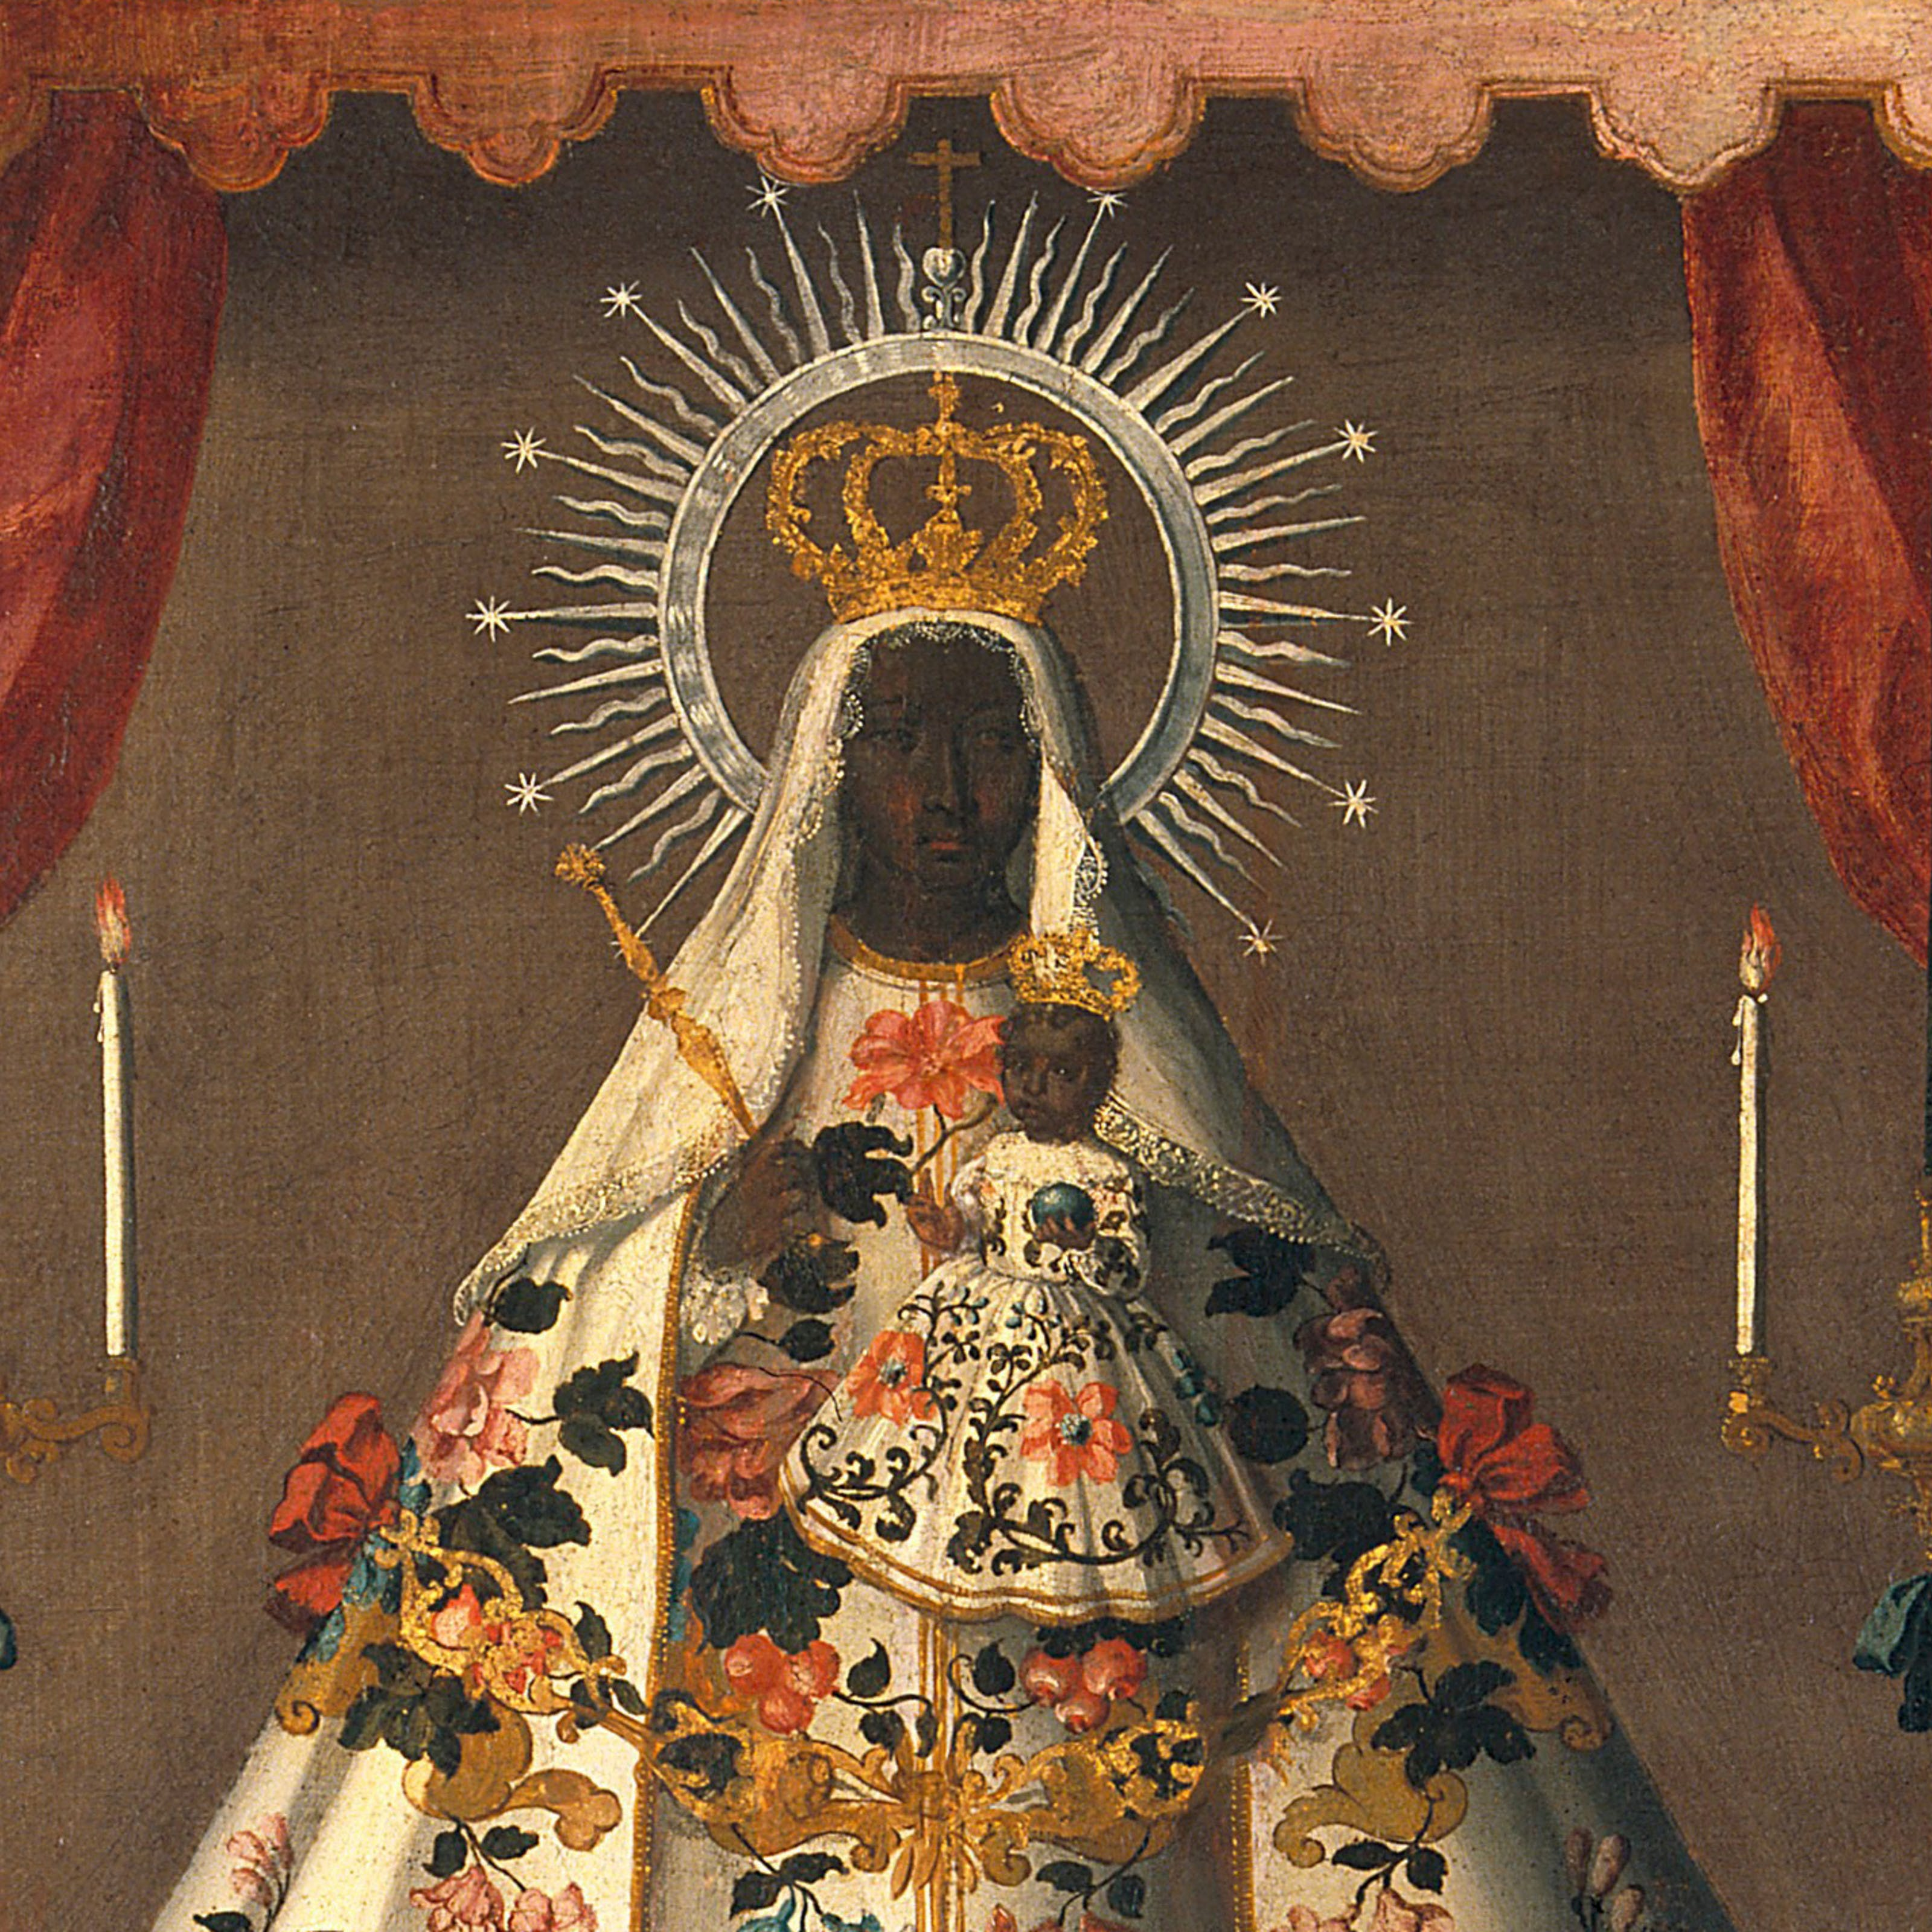 Painting of Our Virgin and Child of Guadalupe displayed in Medicine Man Gallery, bought by Henry Wellcome before 1936, the year of his death